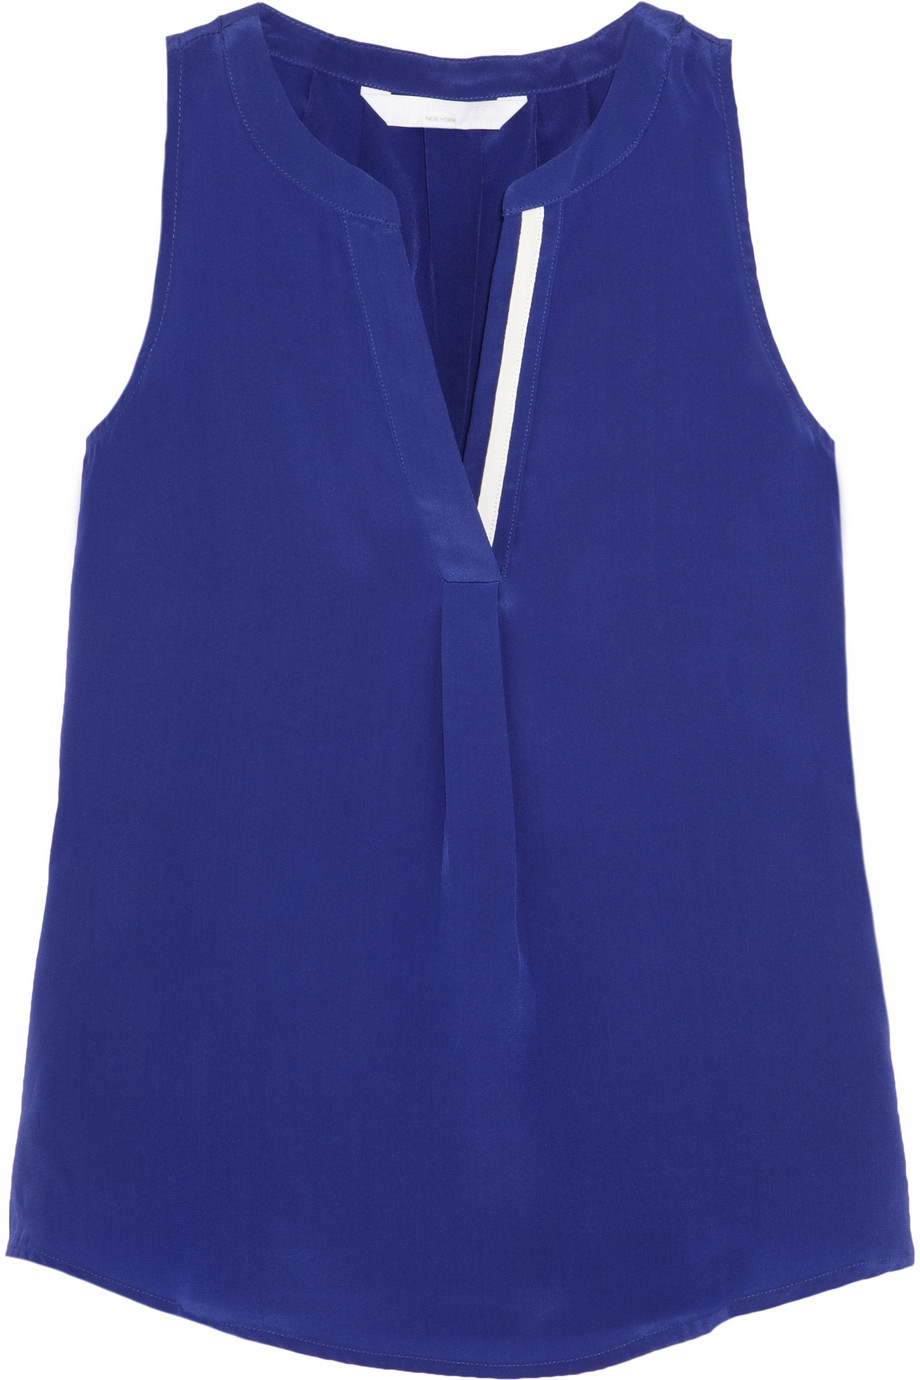 W118 by Walter Baker Madge silk top – 50% at THE OUTNET.COM